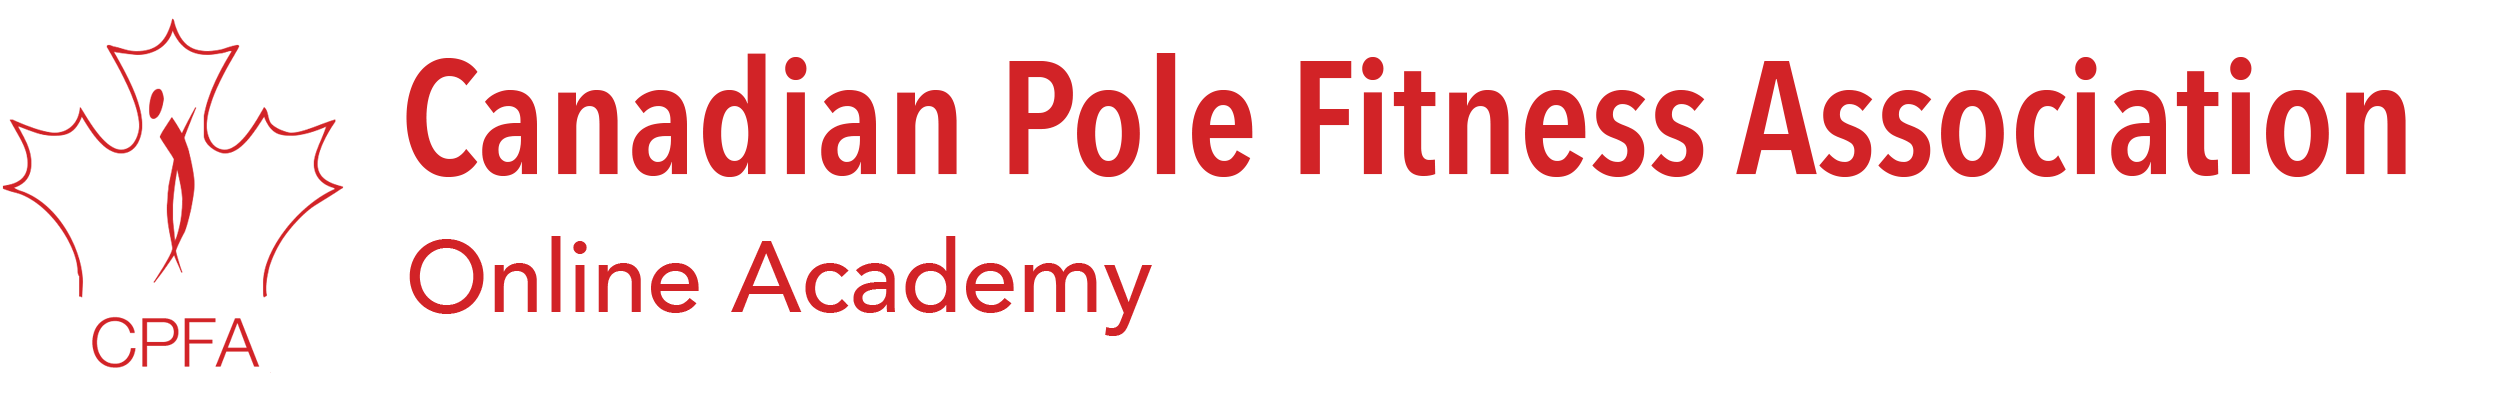 Canadian Pole Fitness Association Online Academy